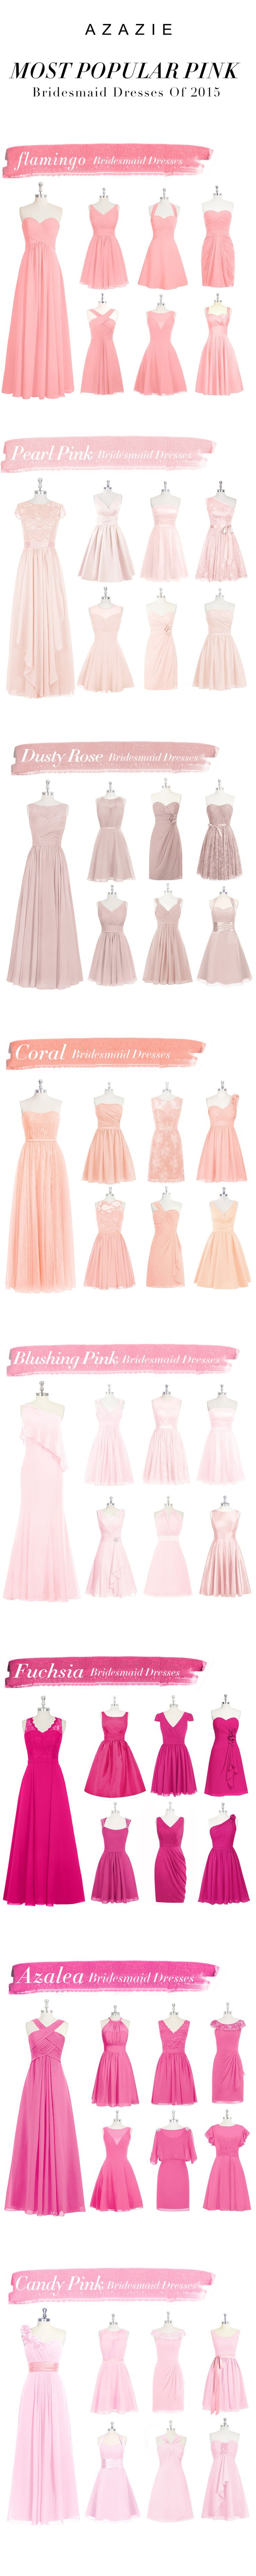 Most Popular Pink Bridesmaid Dresses For 2015 By Azazie